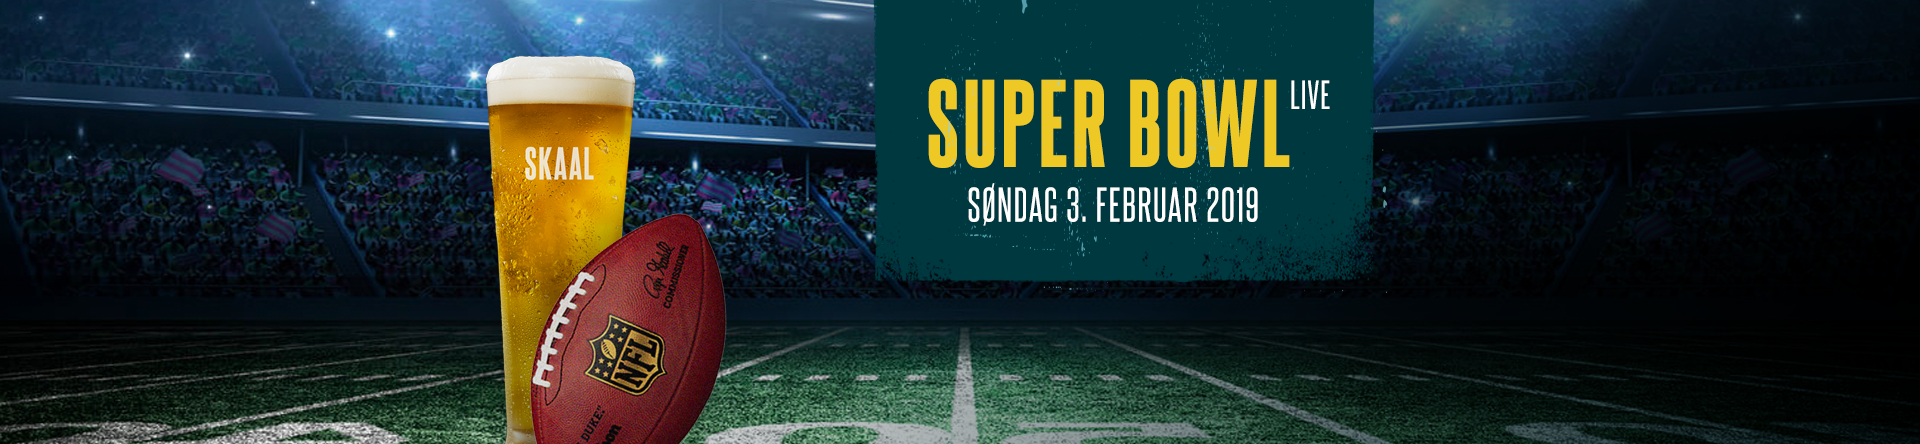 Superbowl-Skaal-2019-event_header